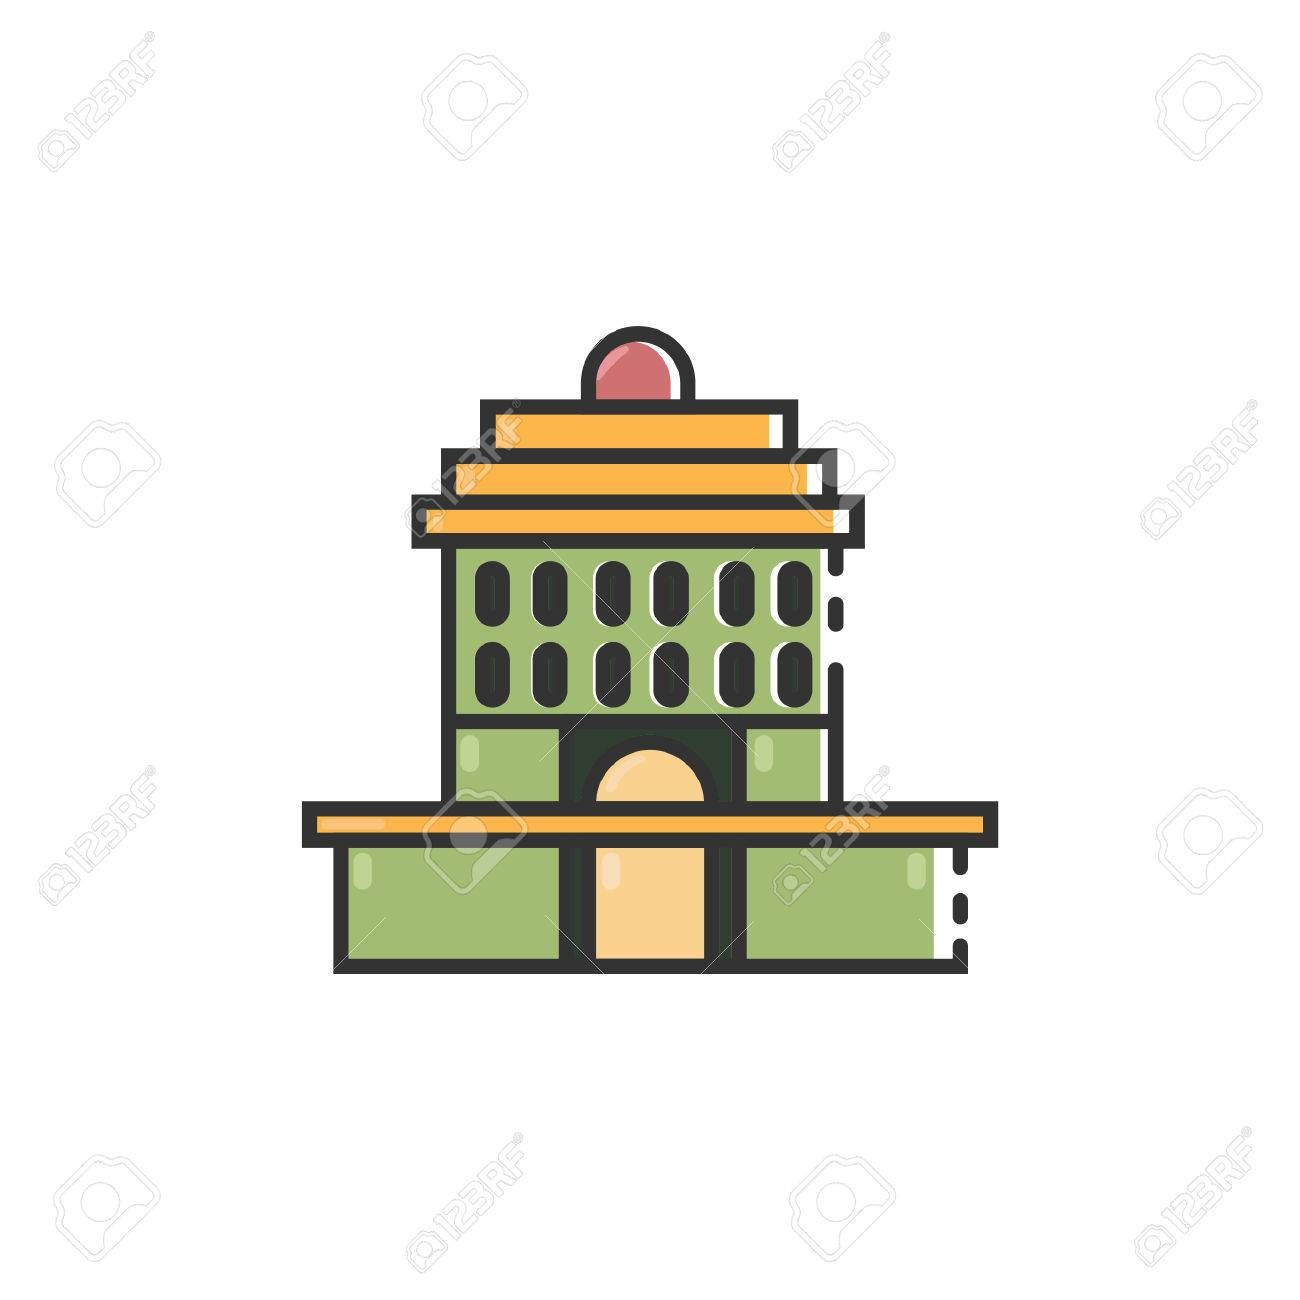 Simple Flat Color Oakland City Hall Icon Vector Illustration Affiliate Color Oakland Simple Flat City City Illustration Illustration Oakland City